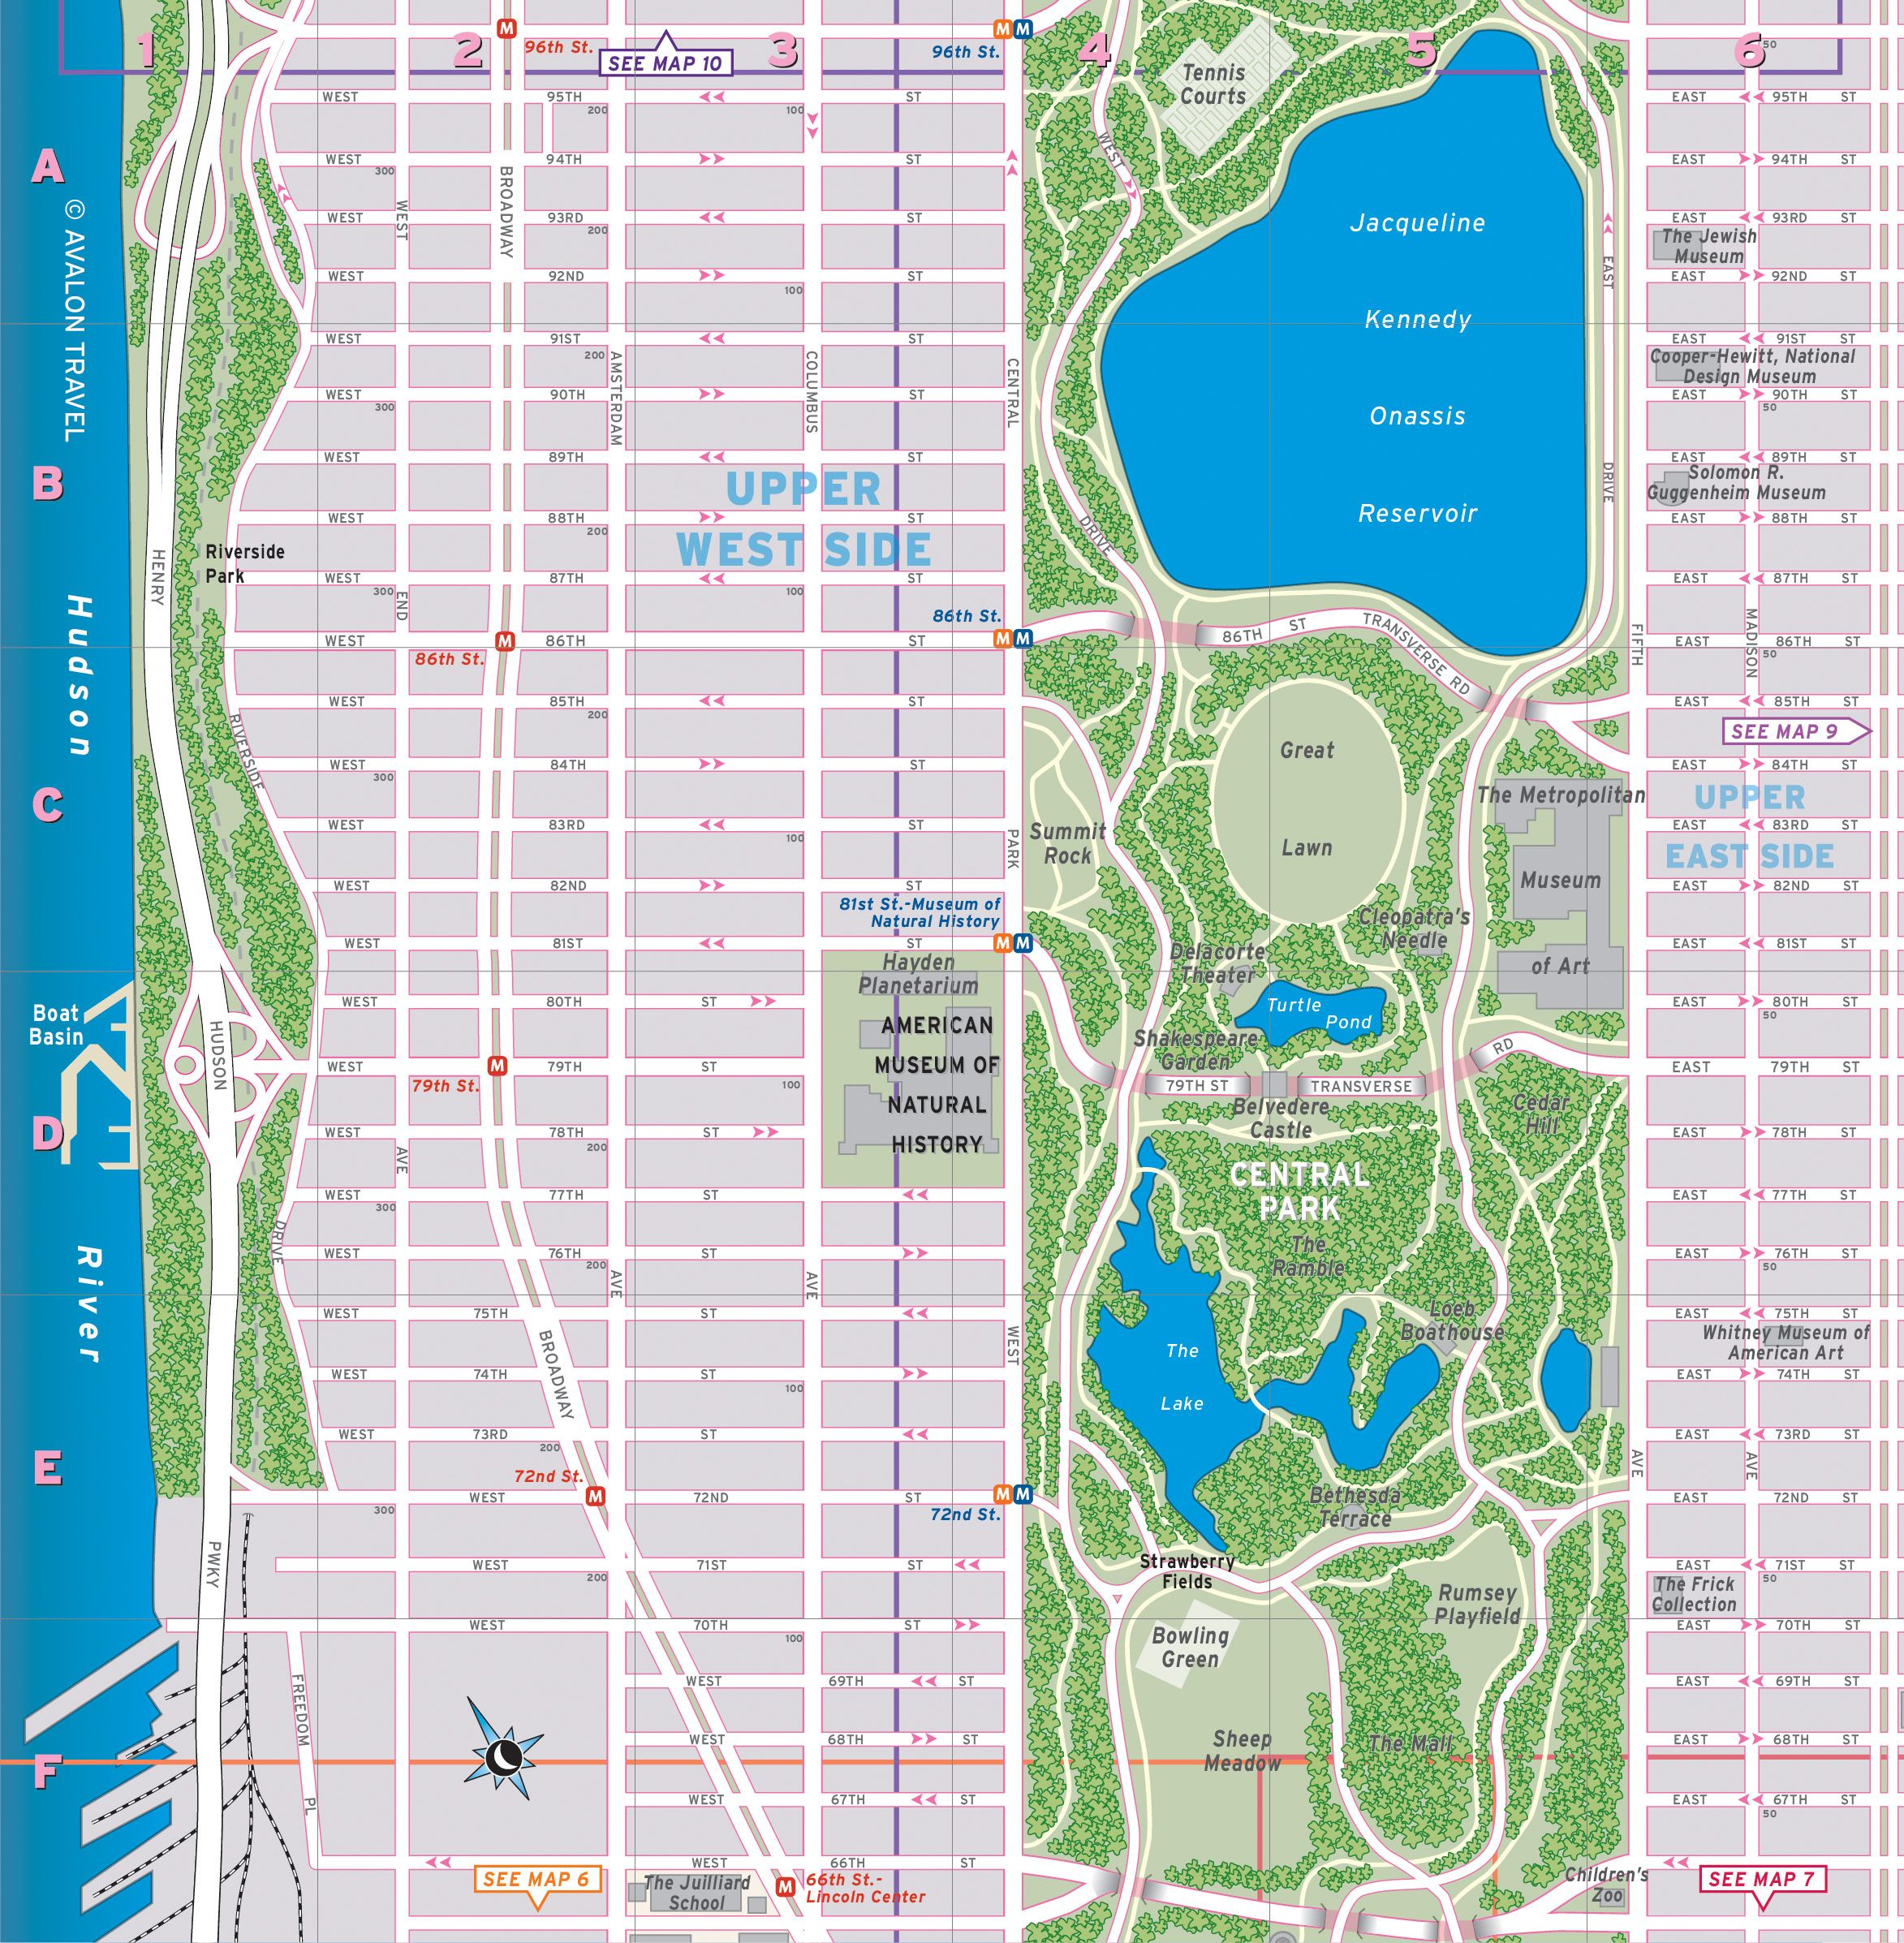 Pin by Diana Morgan Ashworth on UPPER WEST SIDE NYC Pinterest